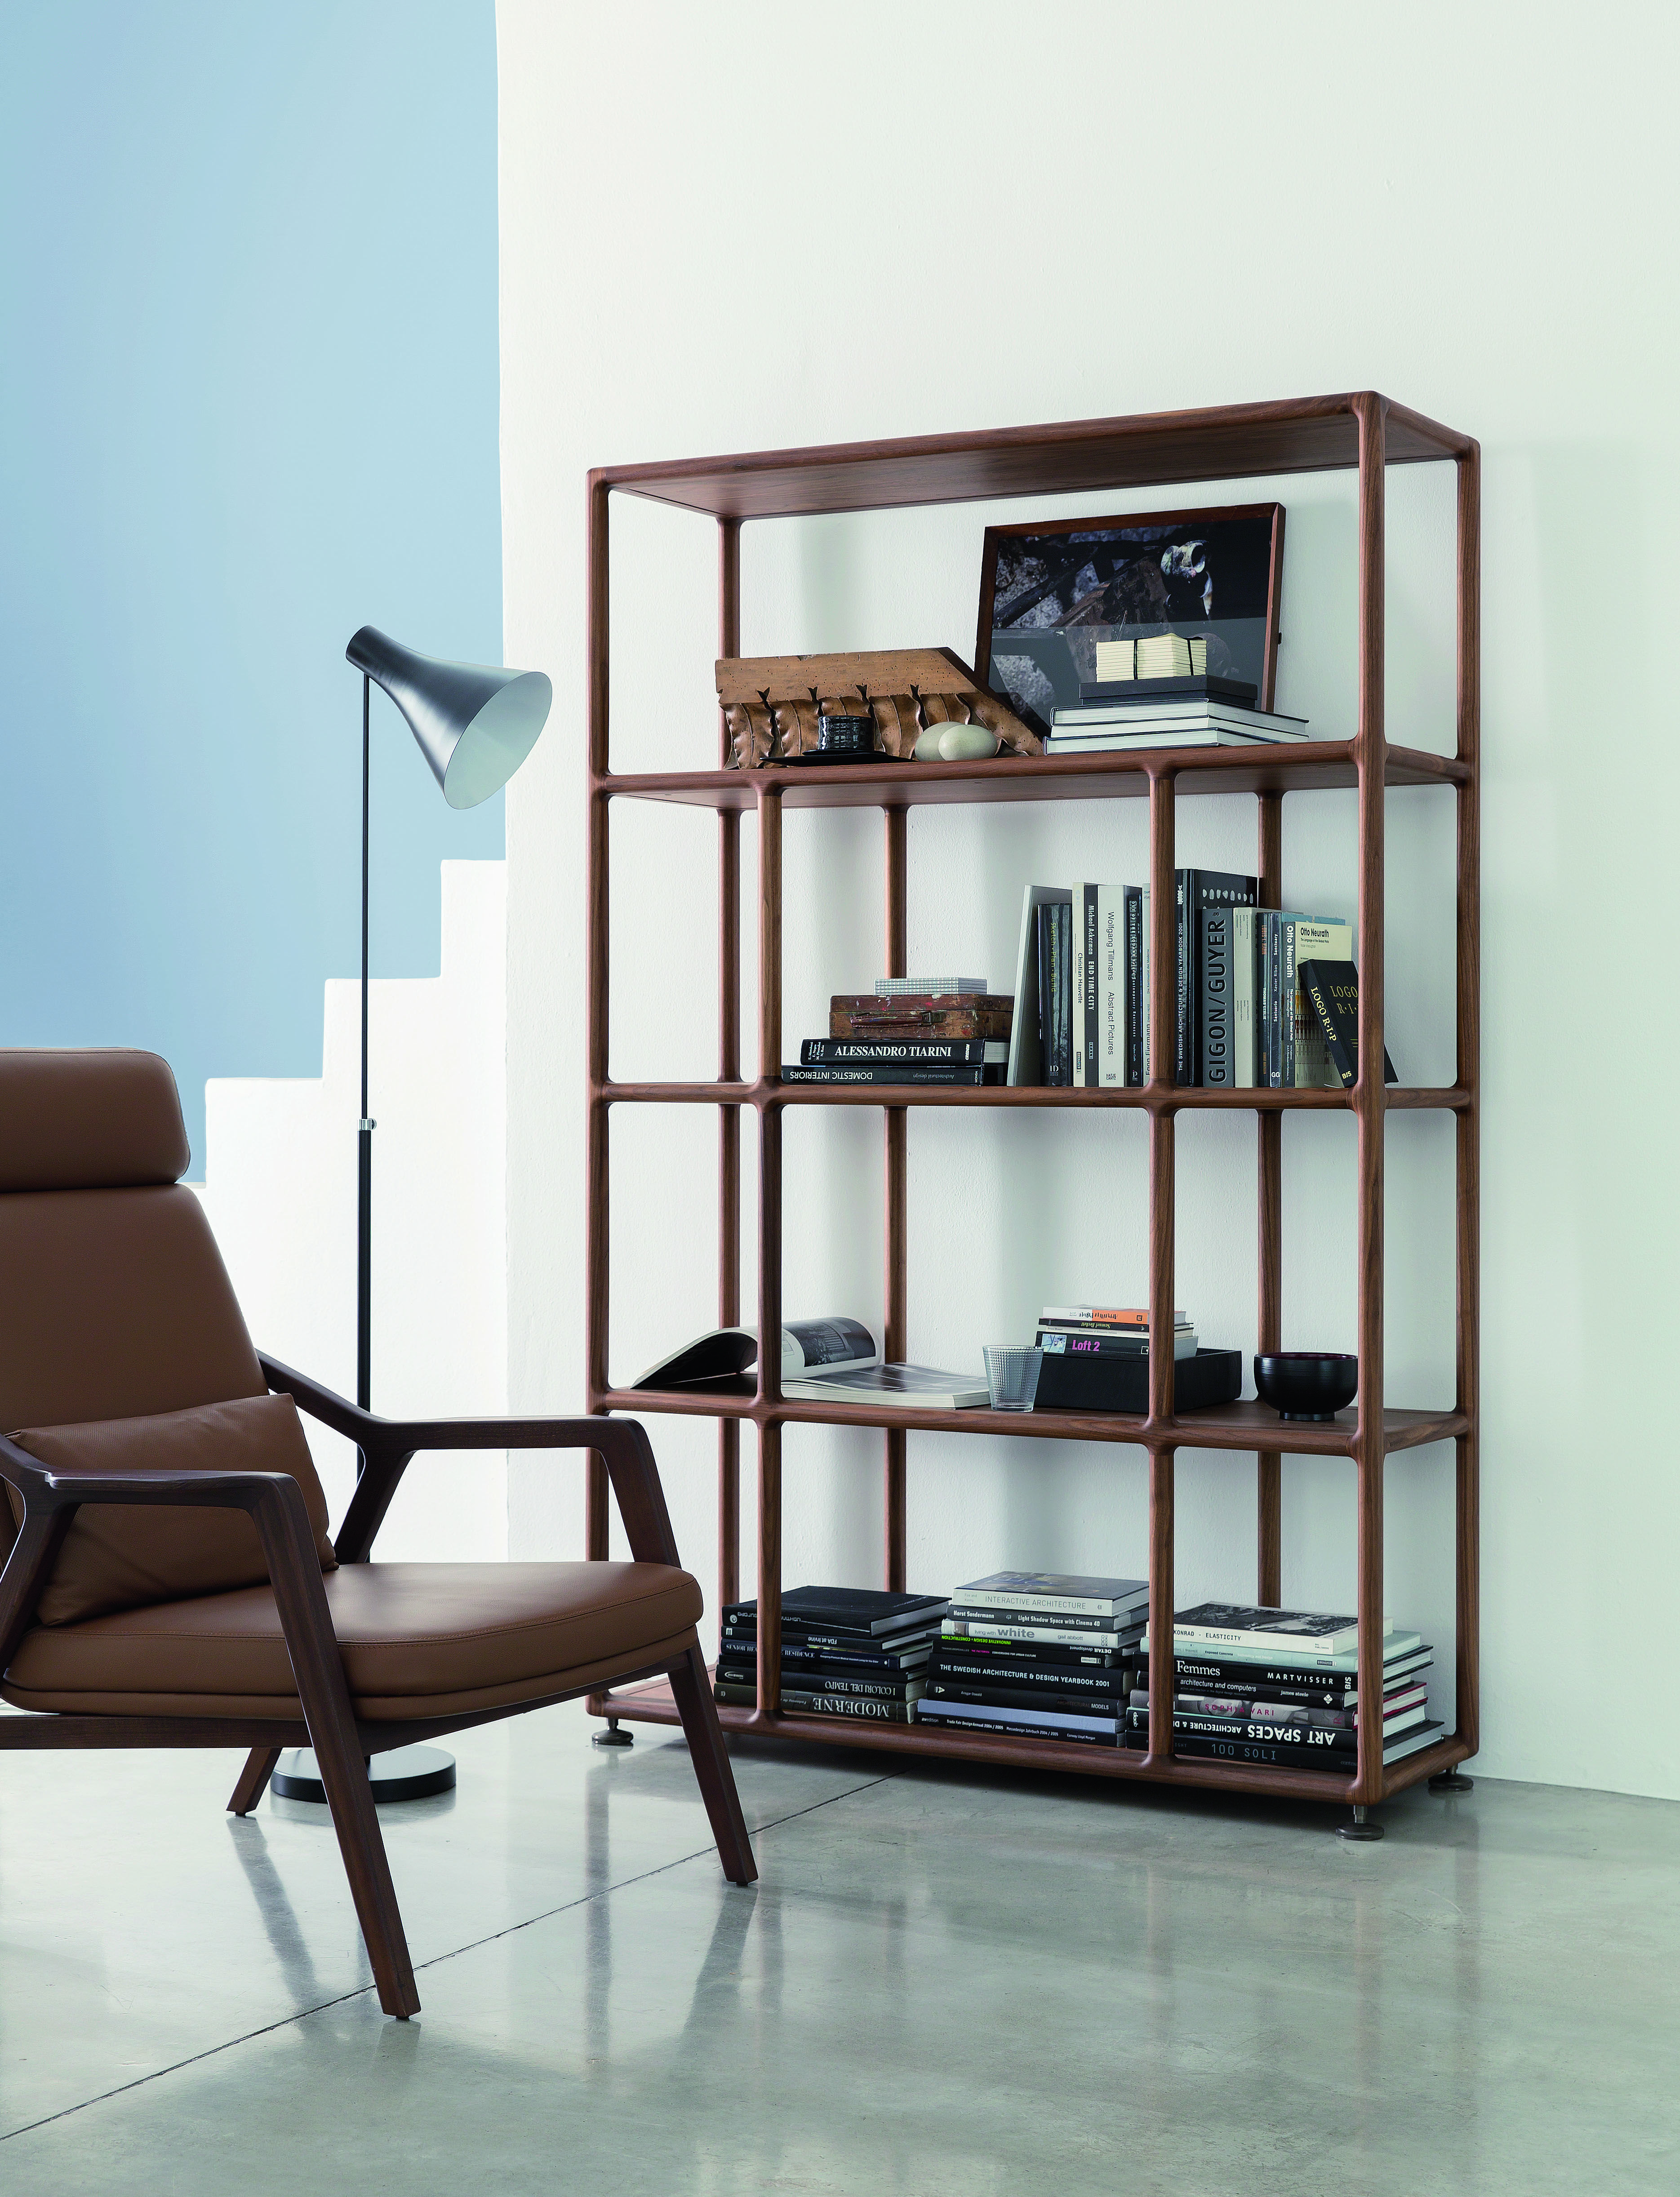 Biblo Bookcase Kensington Apartmentmodern Wood Furniturebookshelf Designtransitional